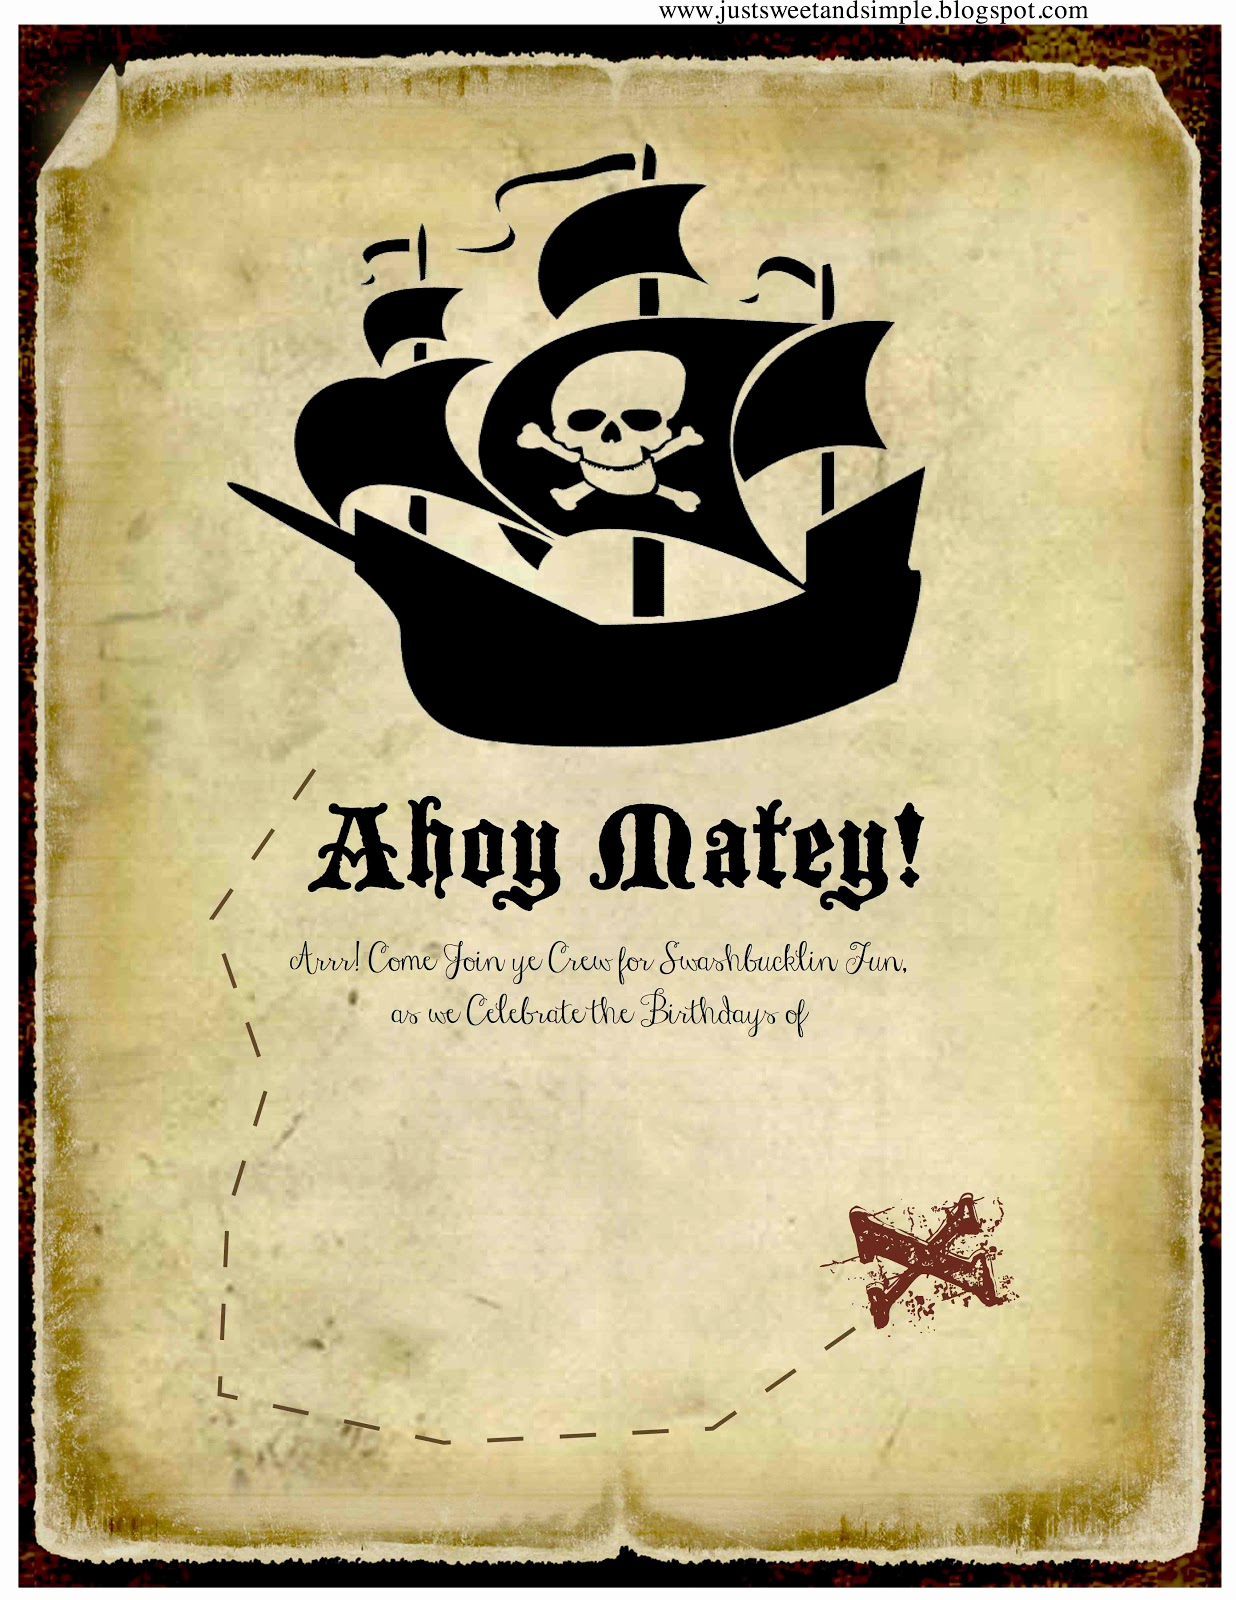 Pirate Party Invitation Templates Inspirational Just Sweet and Simple Pirate Party Invitations